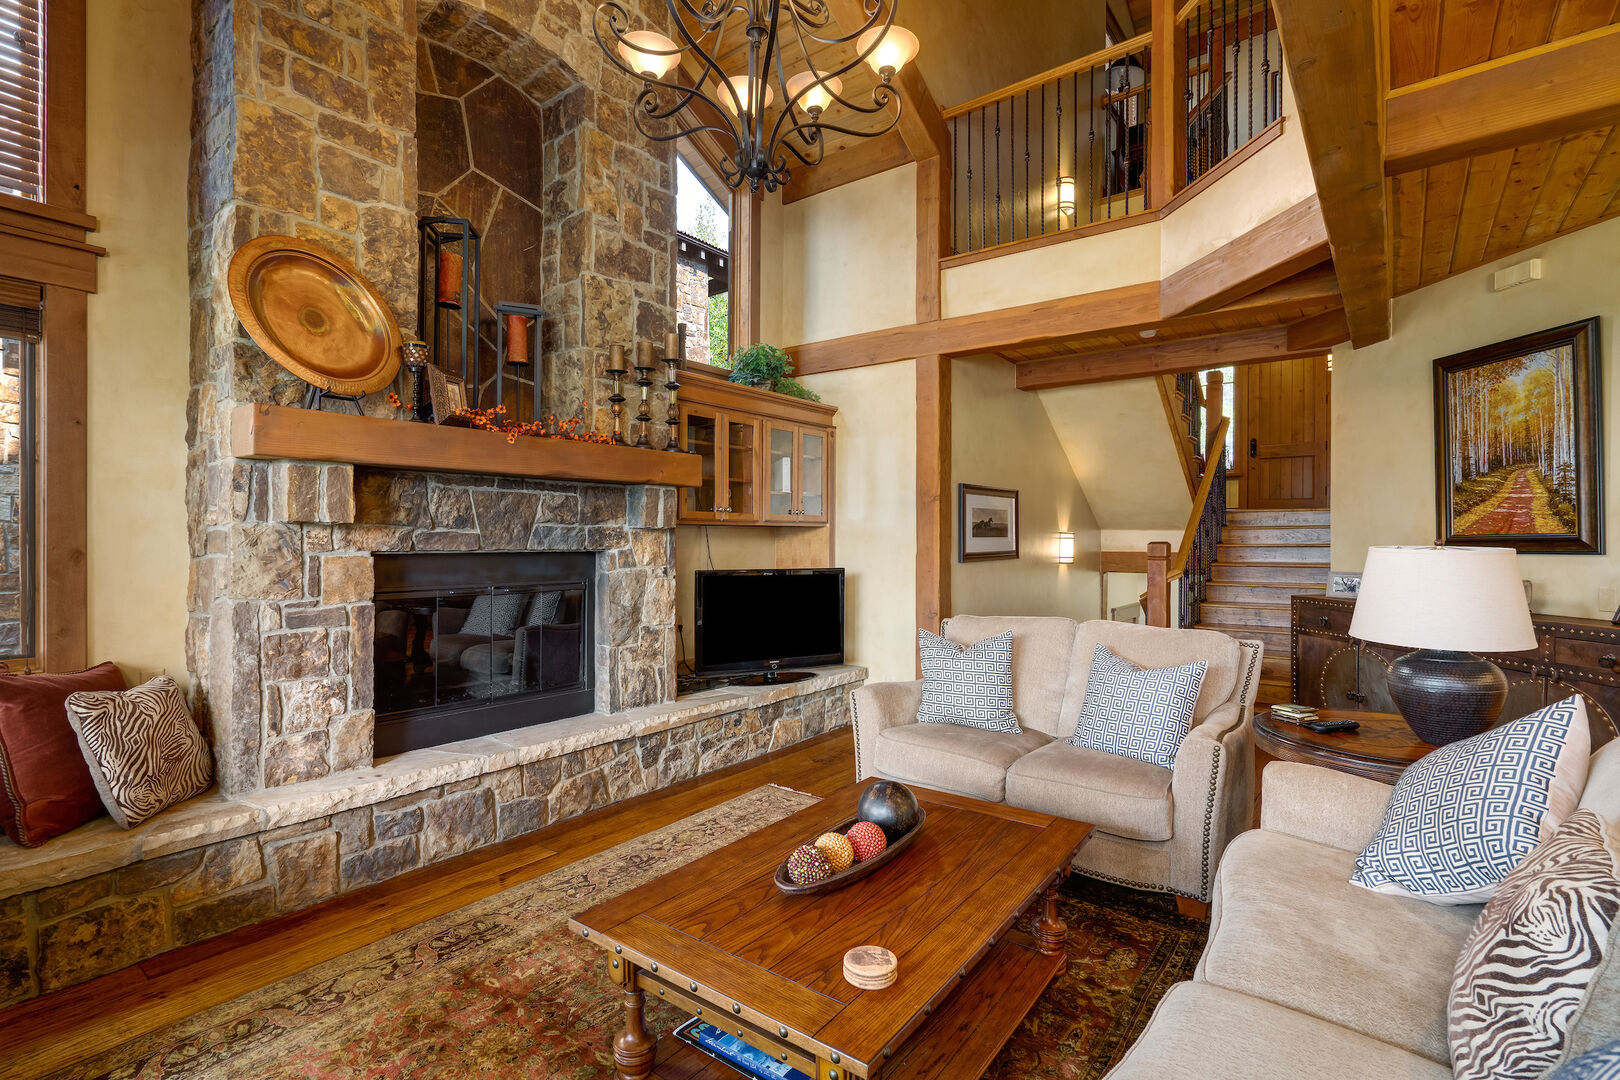 Enjoy cozy nights by the fireplace